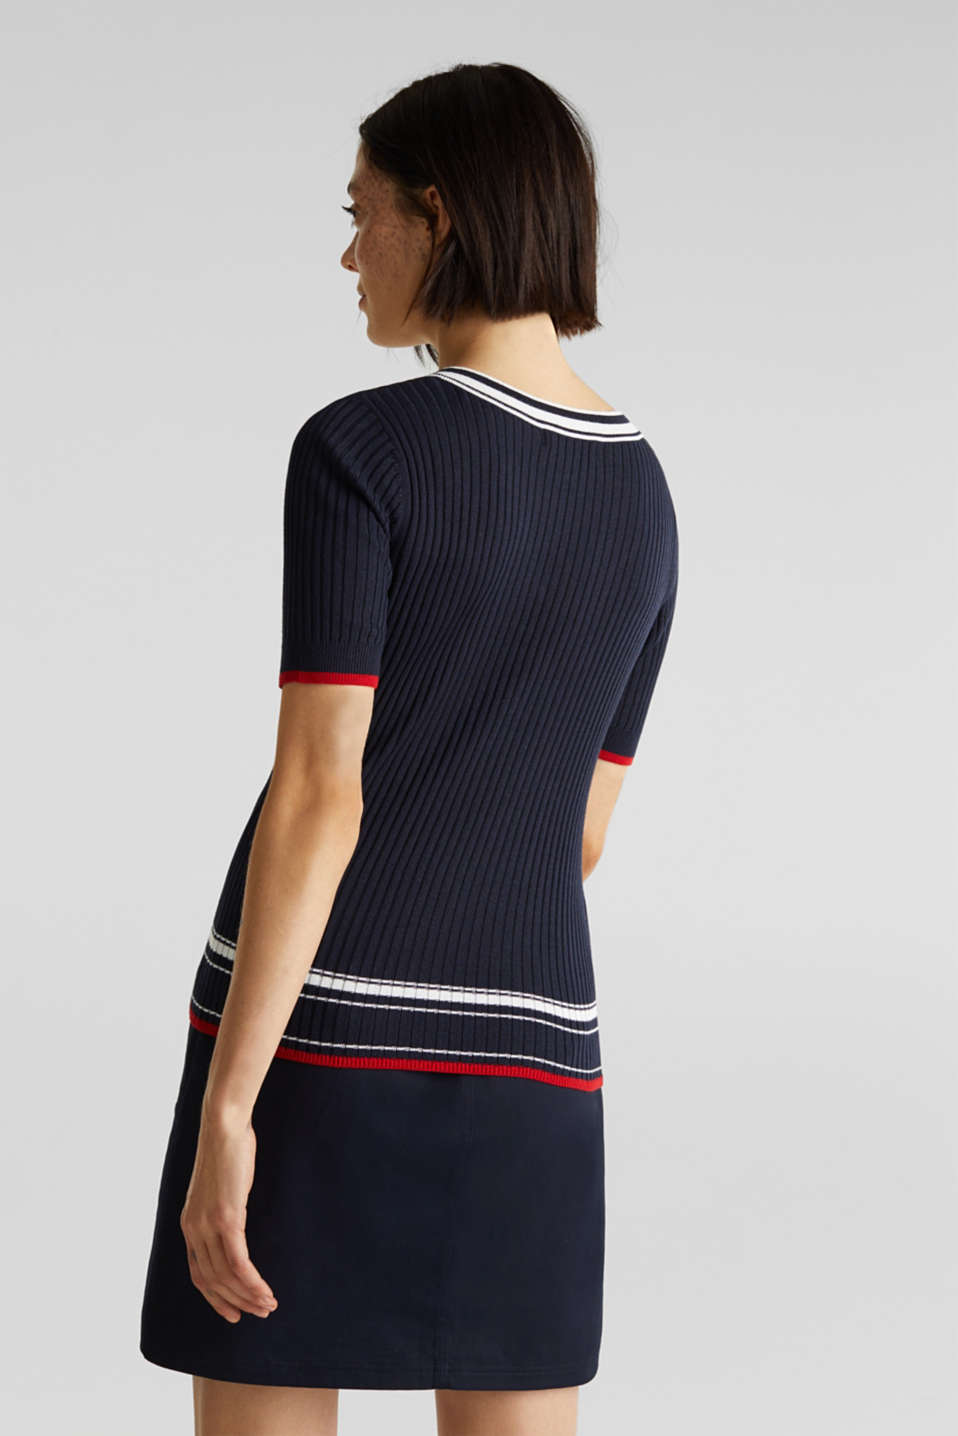 Short-sleeved V-neck jumper, NAVY 3, detail image number 3